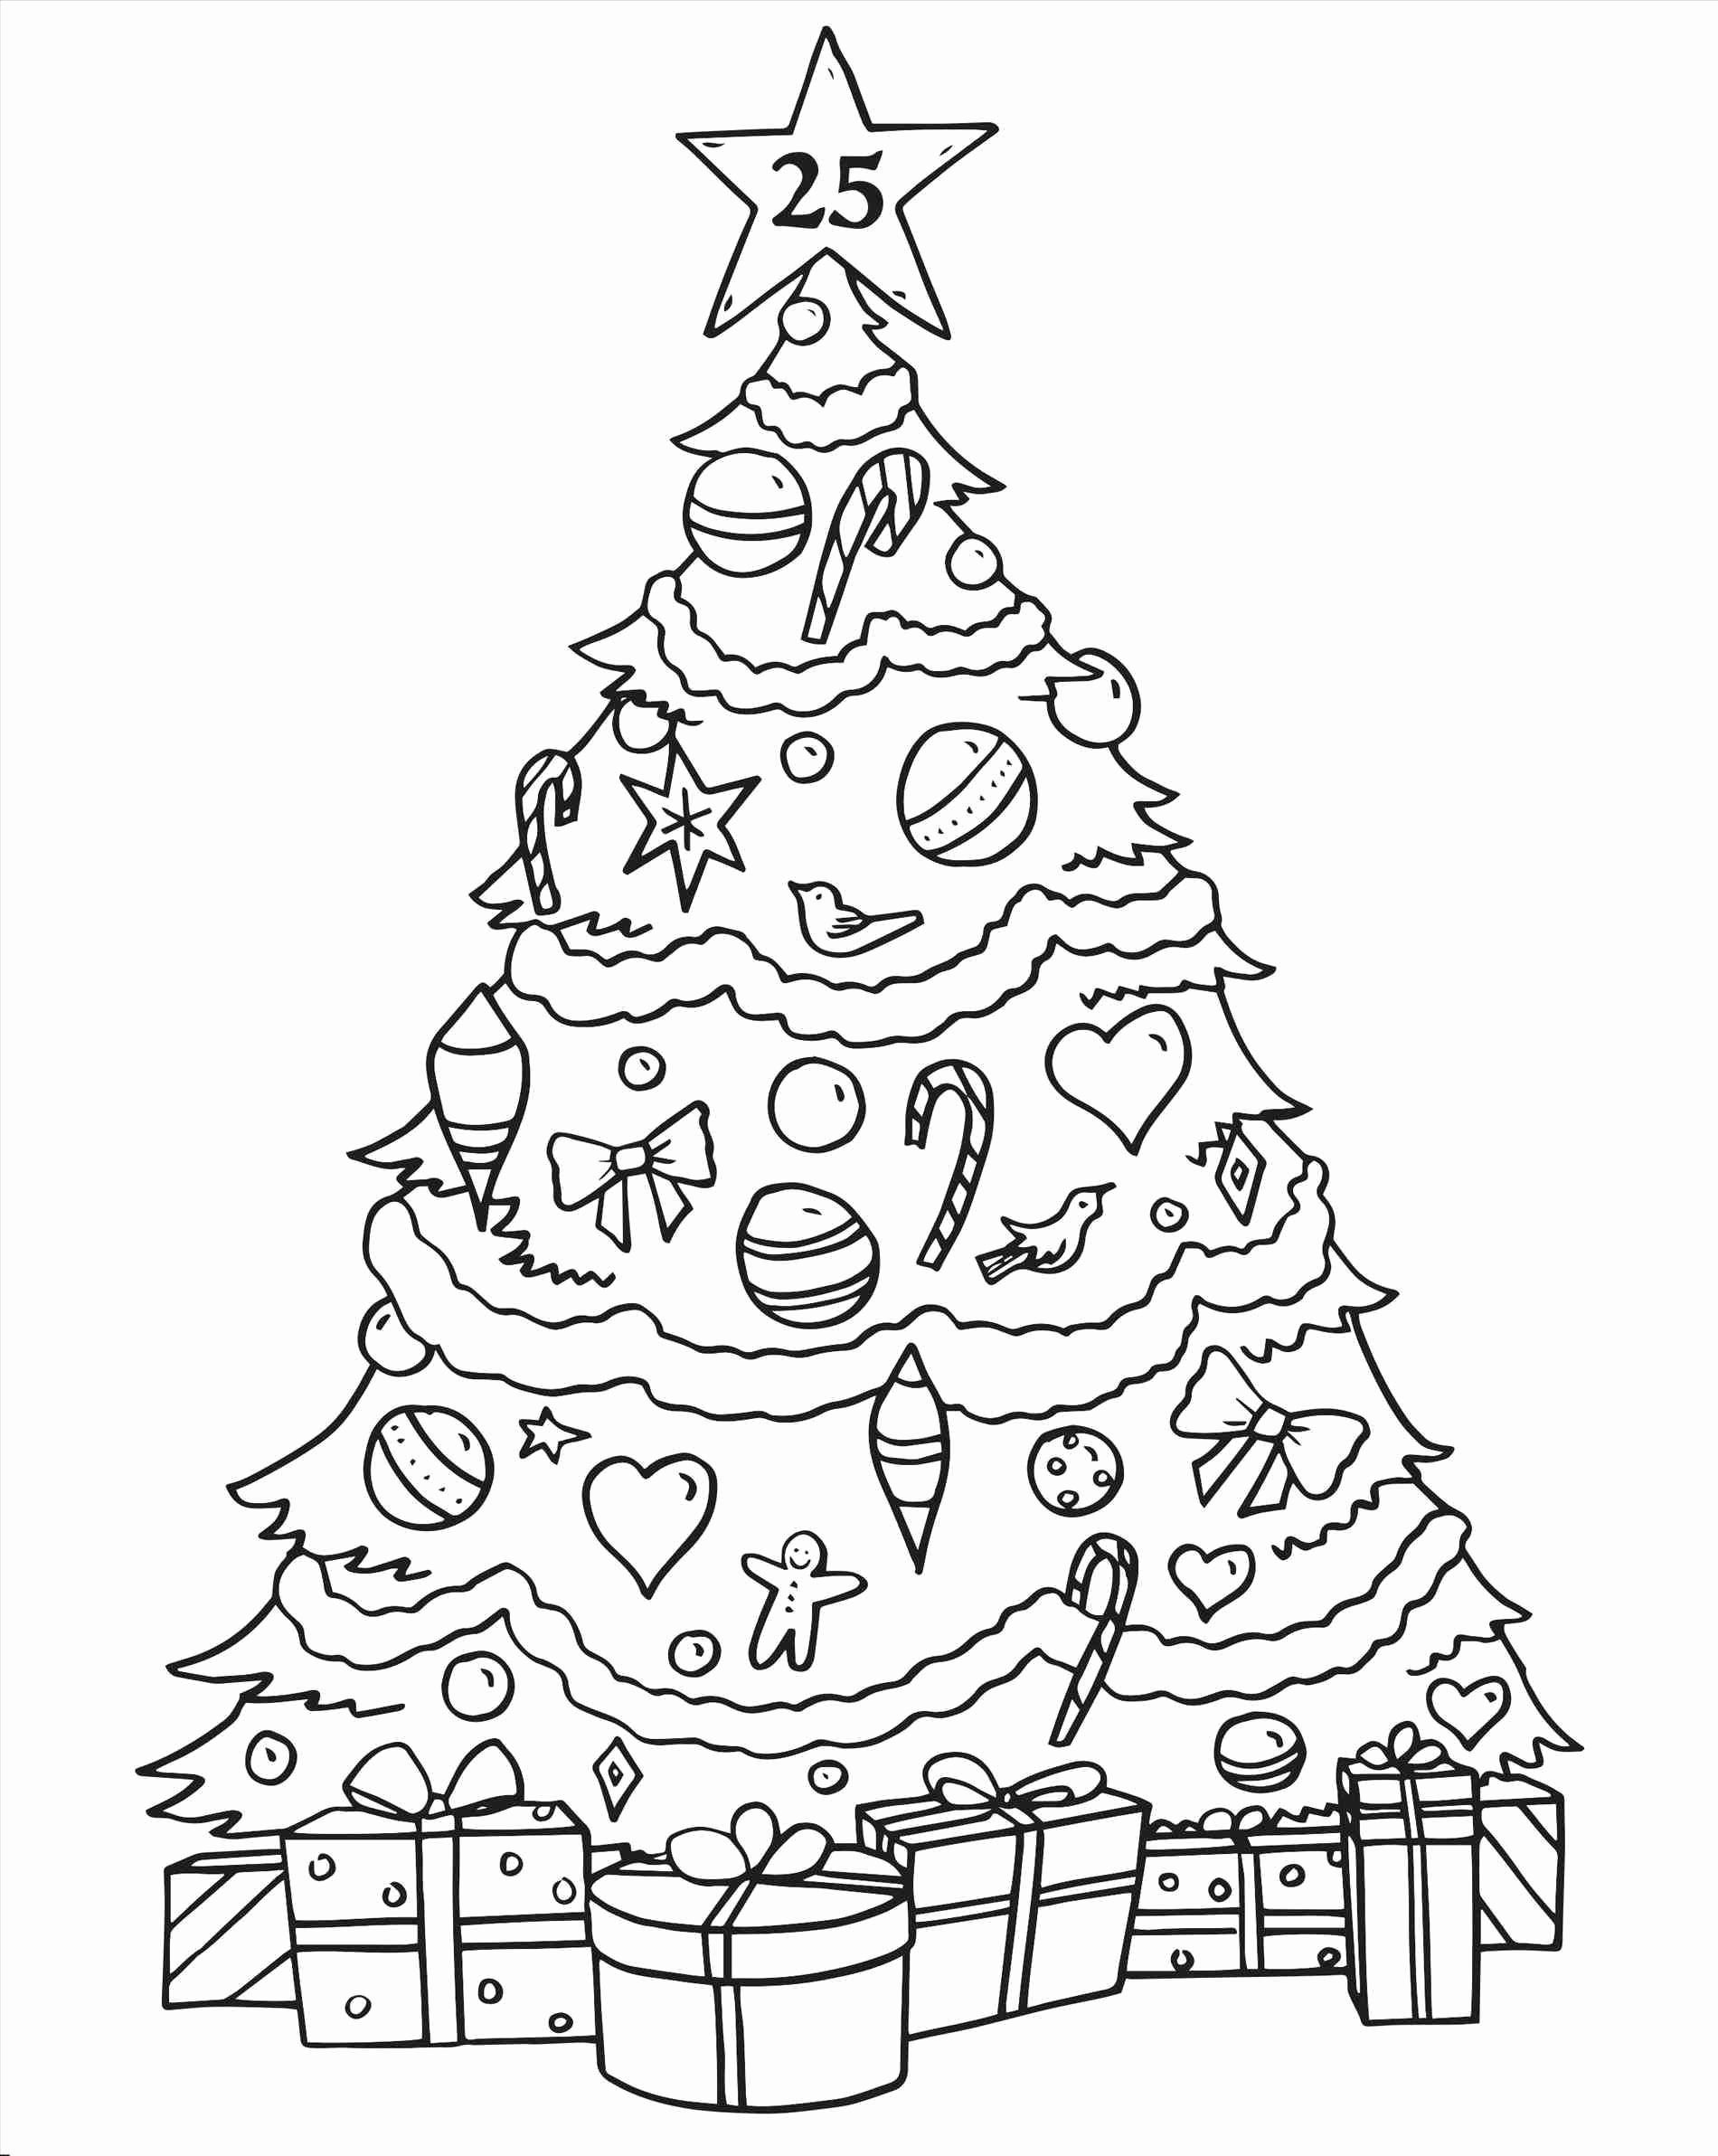 Merry Christmas Tree Coloring Page Beautiful Coloring Pages Christmas Tree Coloring Draw Christmas Tree Coloring Page Christmas Tree Drawing Tree Coloring Page